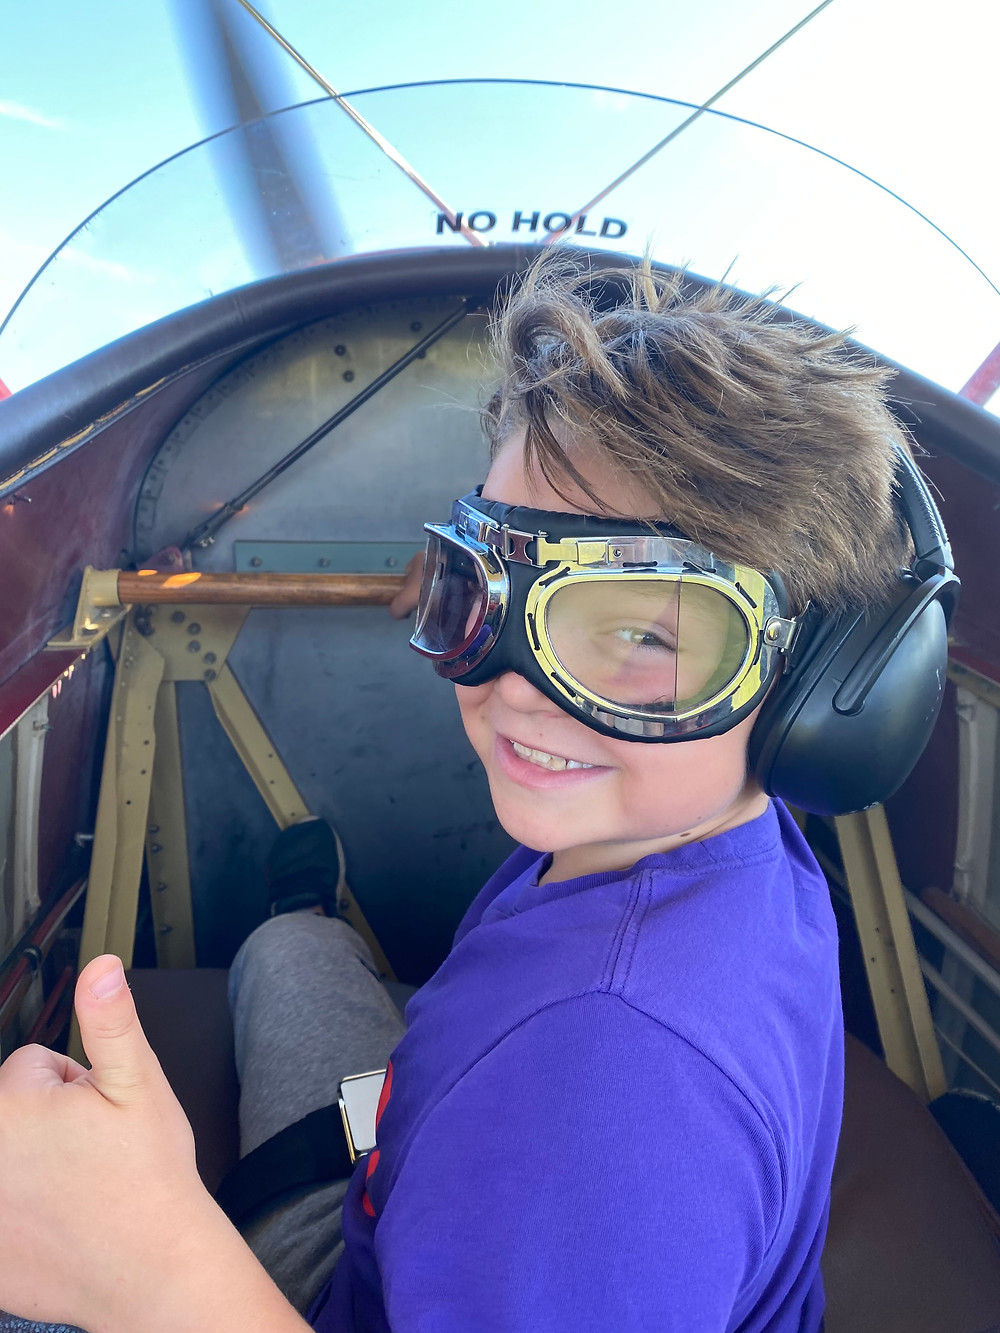 A young boy in a purple t shirt, with googles and headphones gives a thumbs up in the cockpit of a biplane.